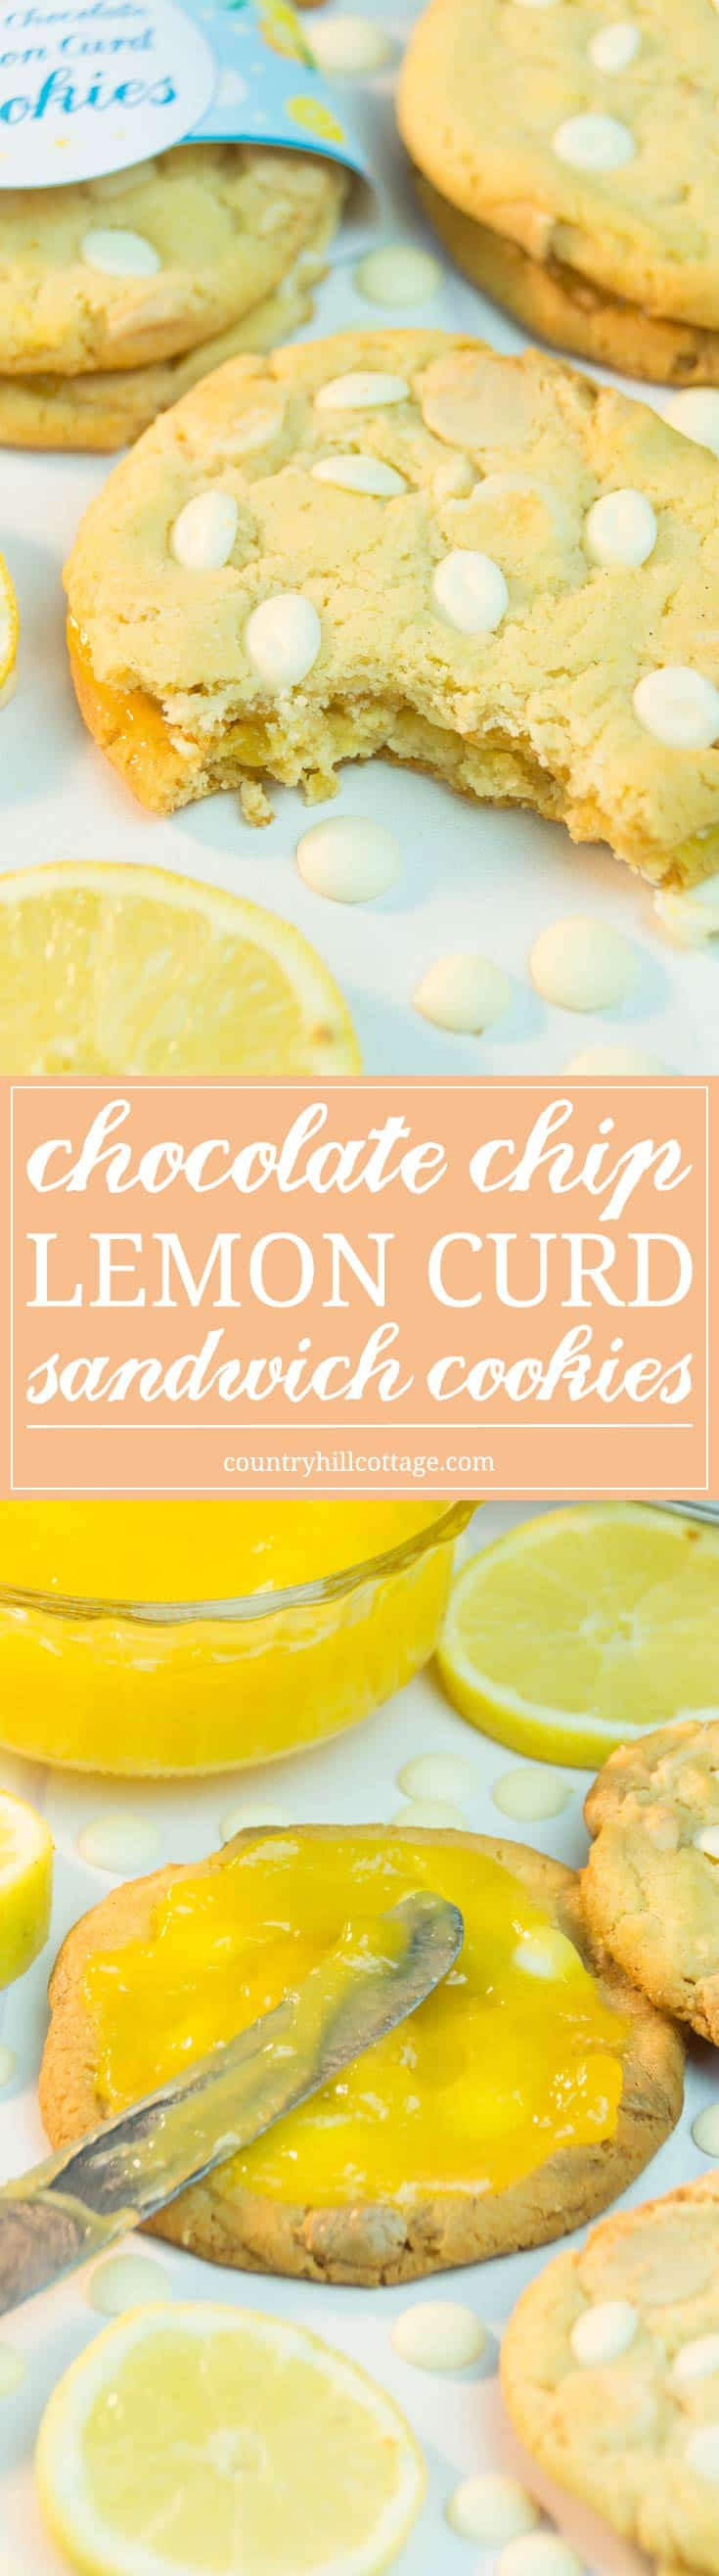 Our yummy chocolate chip lemon curd sandwich cookies will bring out the sunshine in your kitchen! You can savour the cookies on their own or pep them up with an extra layer of lemon curd sandwiched between two cookies. We've also created cute printable cookie wrappers that you can download at our blog. #chocolatechips #lemoncurd #cookies | countryhillcottage.com